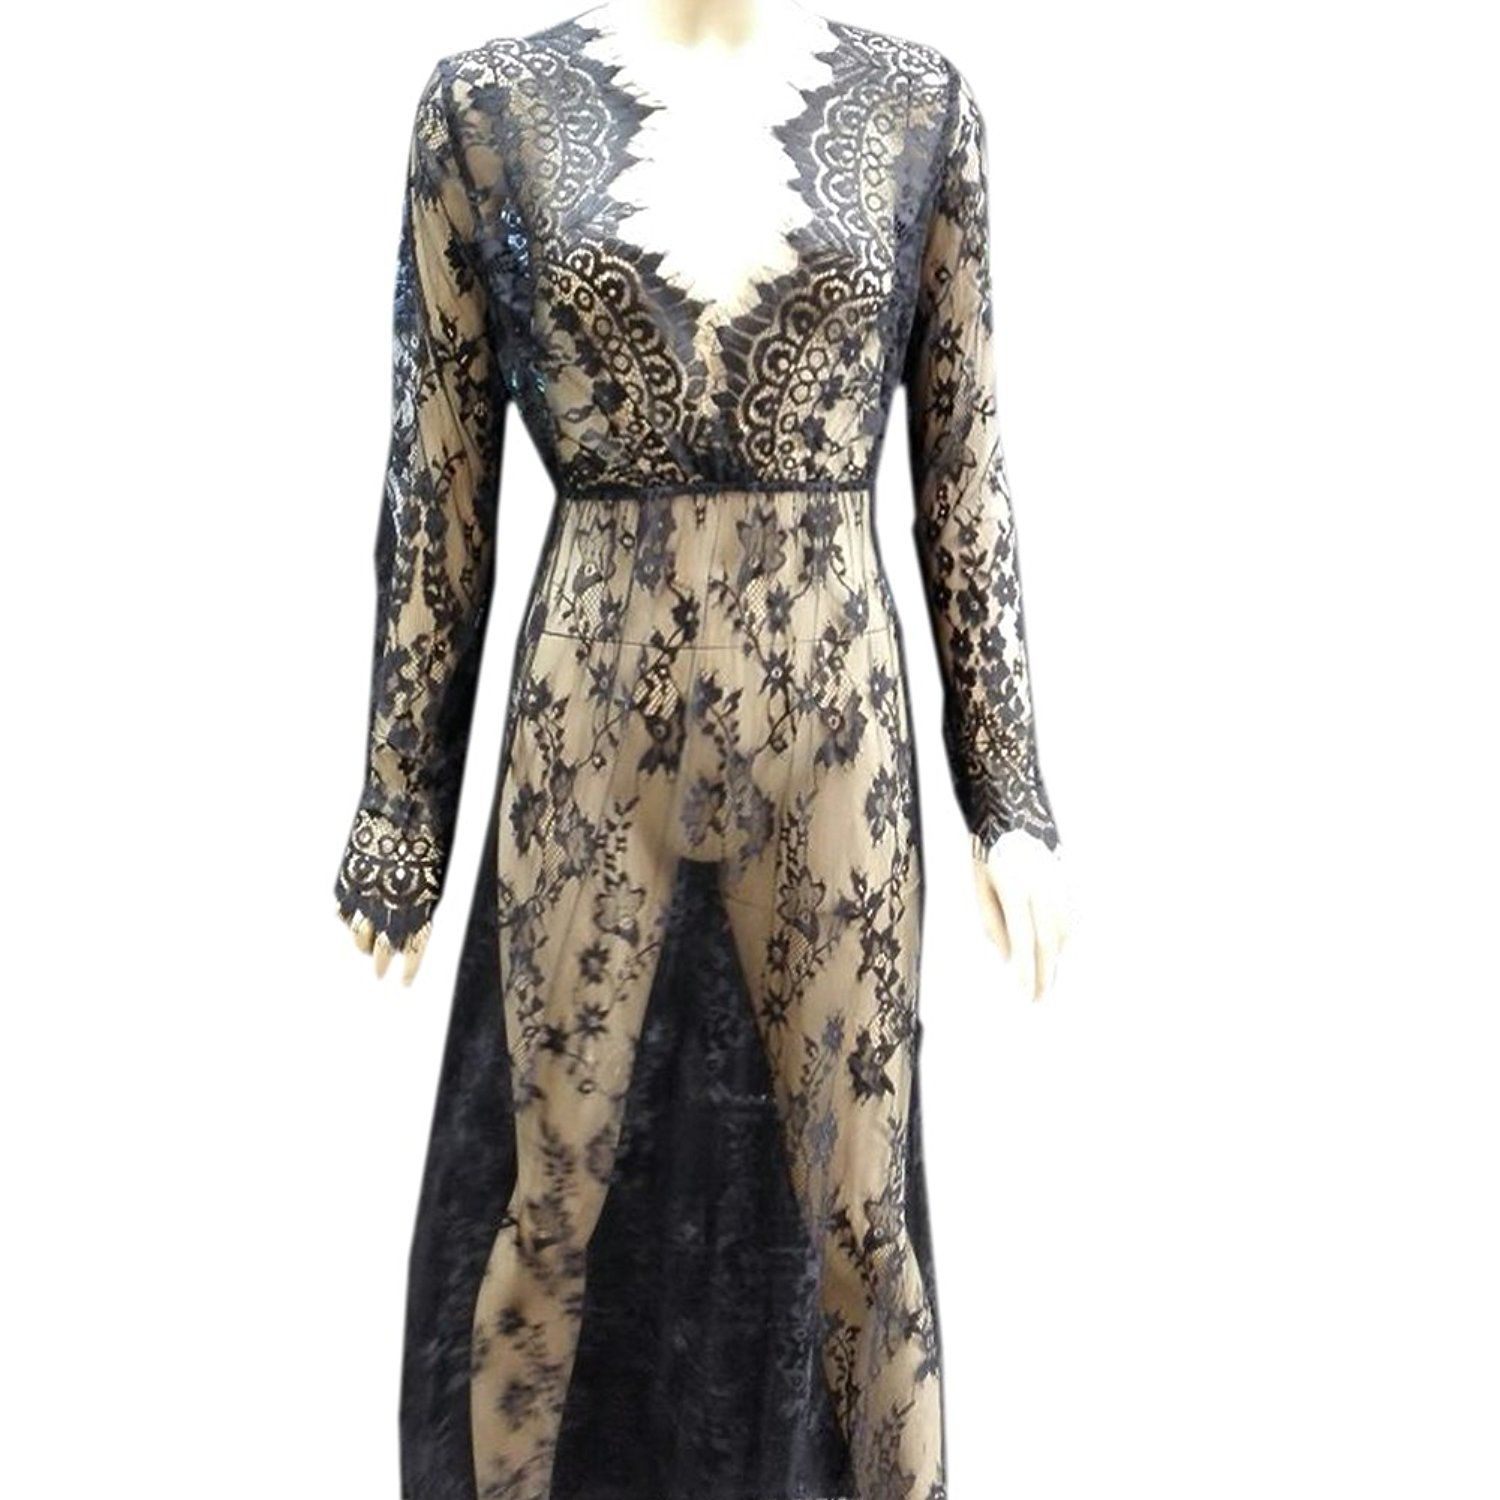 Lace v neck maxi dress  Black Floral Lace Seethrough Deep Vneck Long Sleeves Bridesmaid